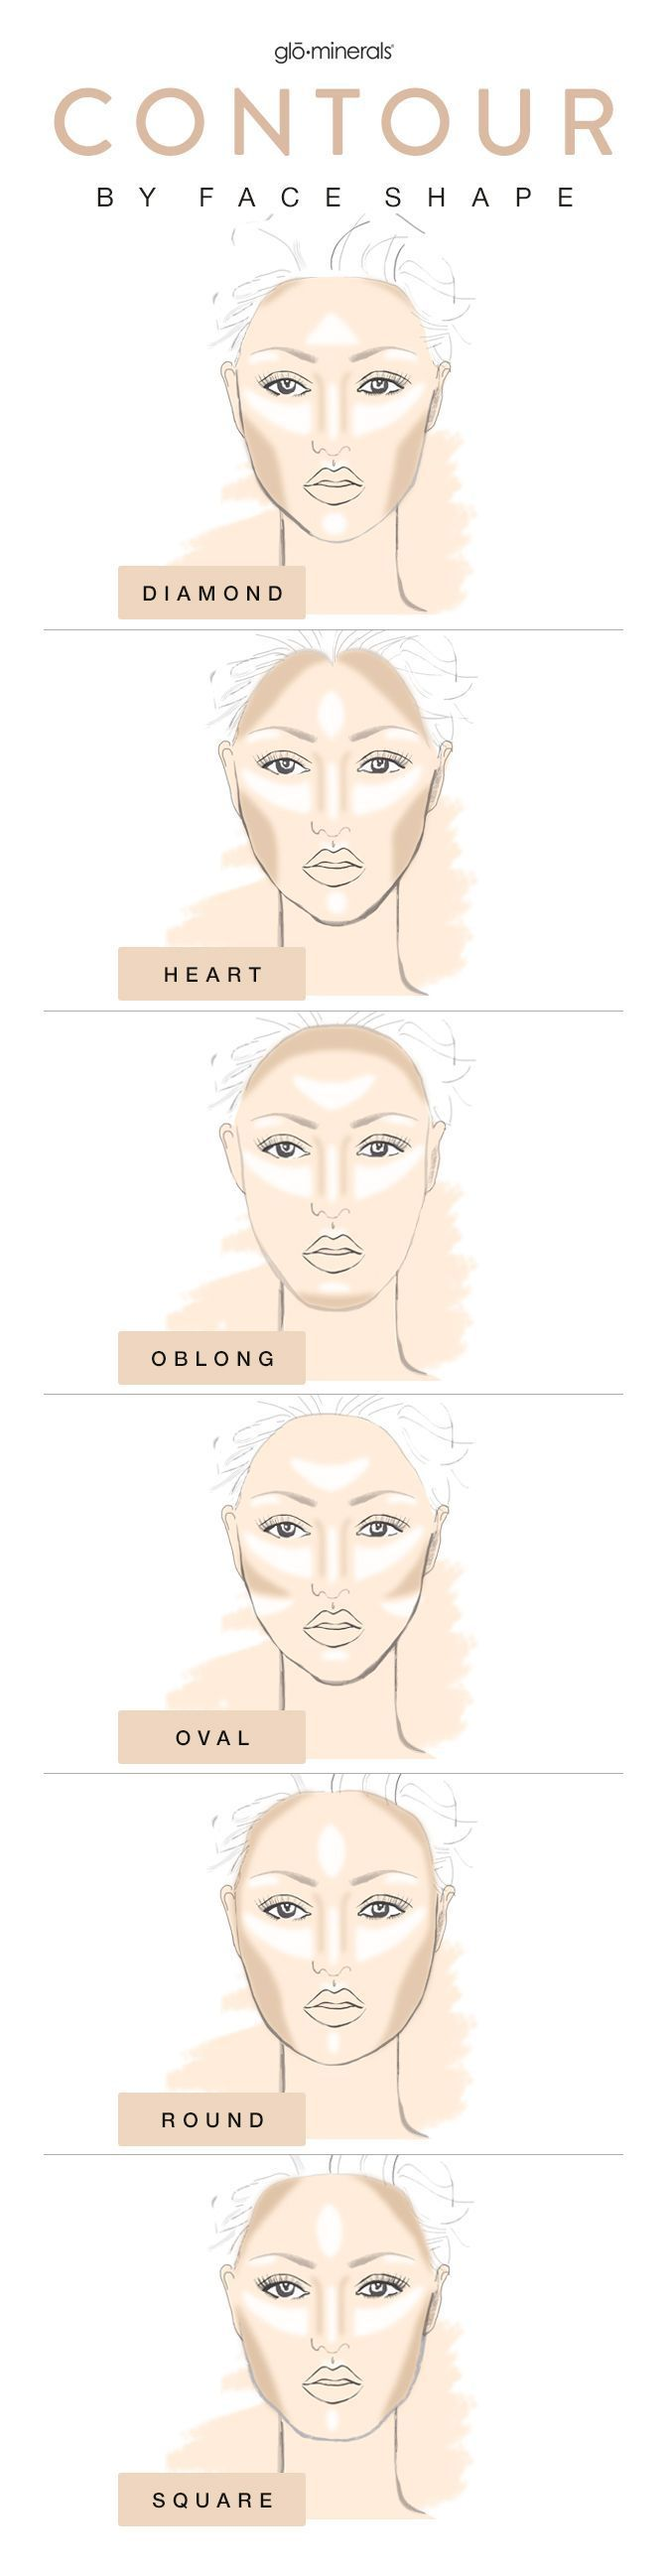 Make sure you are contouring according to your face shape. Use this guide and learn how to contour and highlight for every face shape